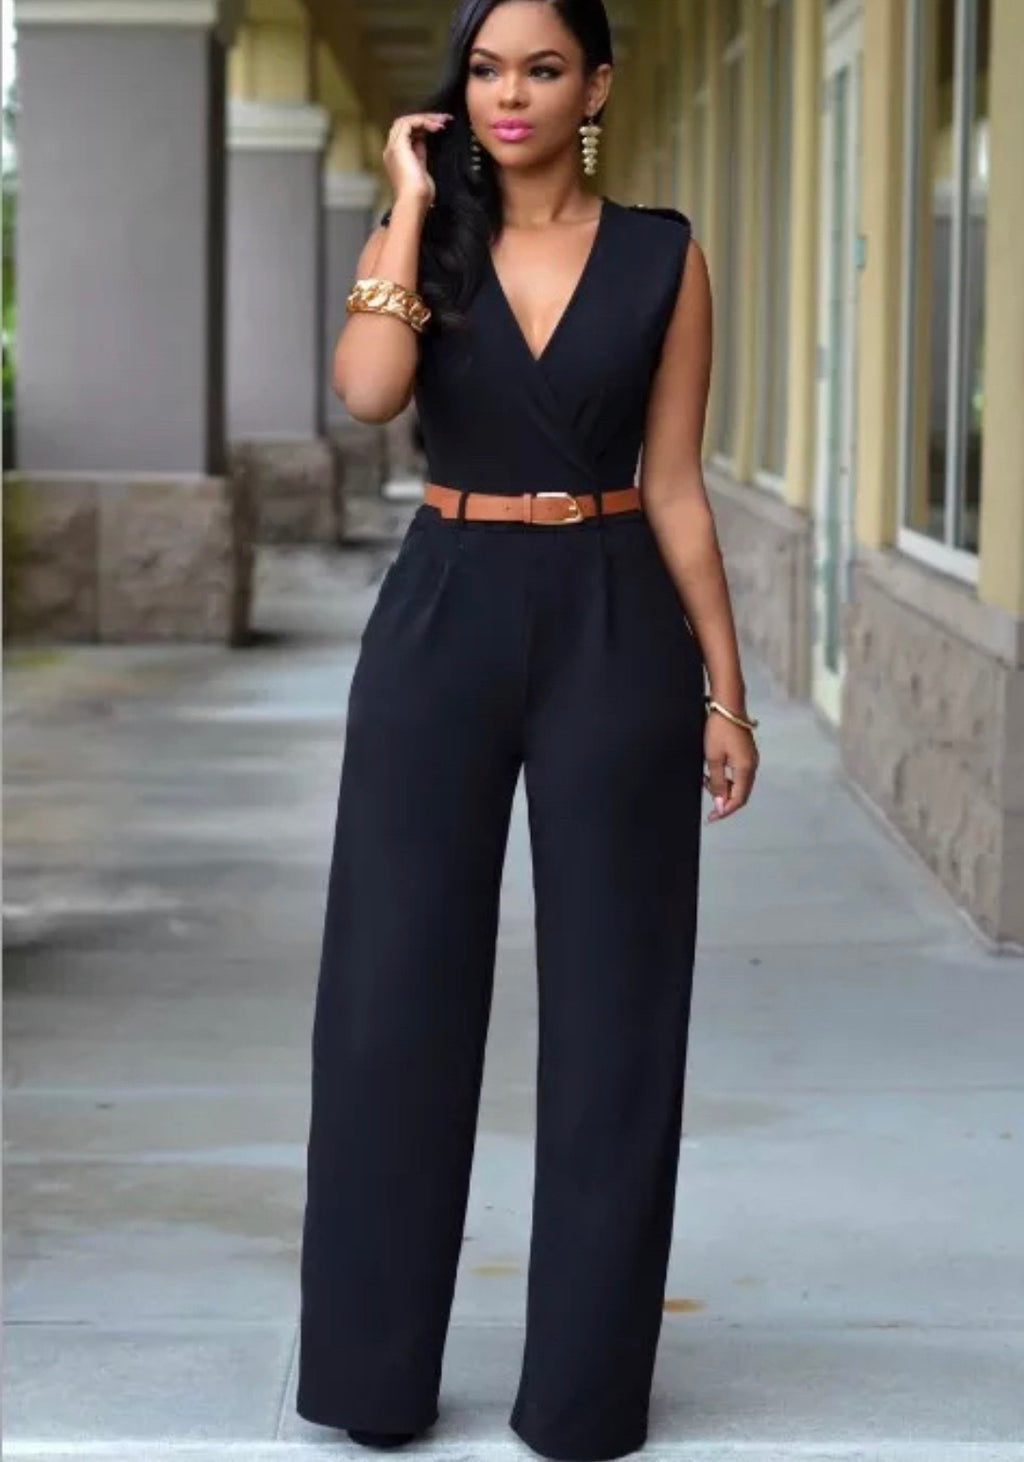 Katie's Sleek Jumpsuit